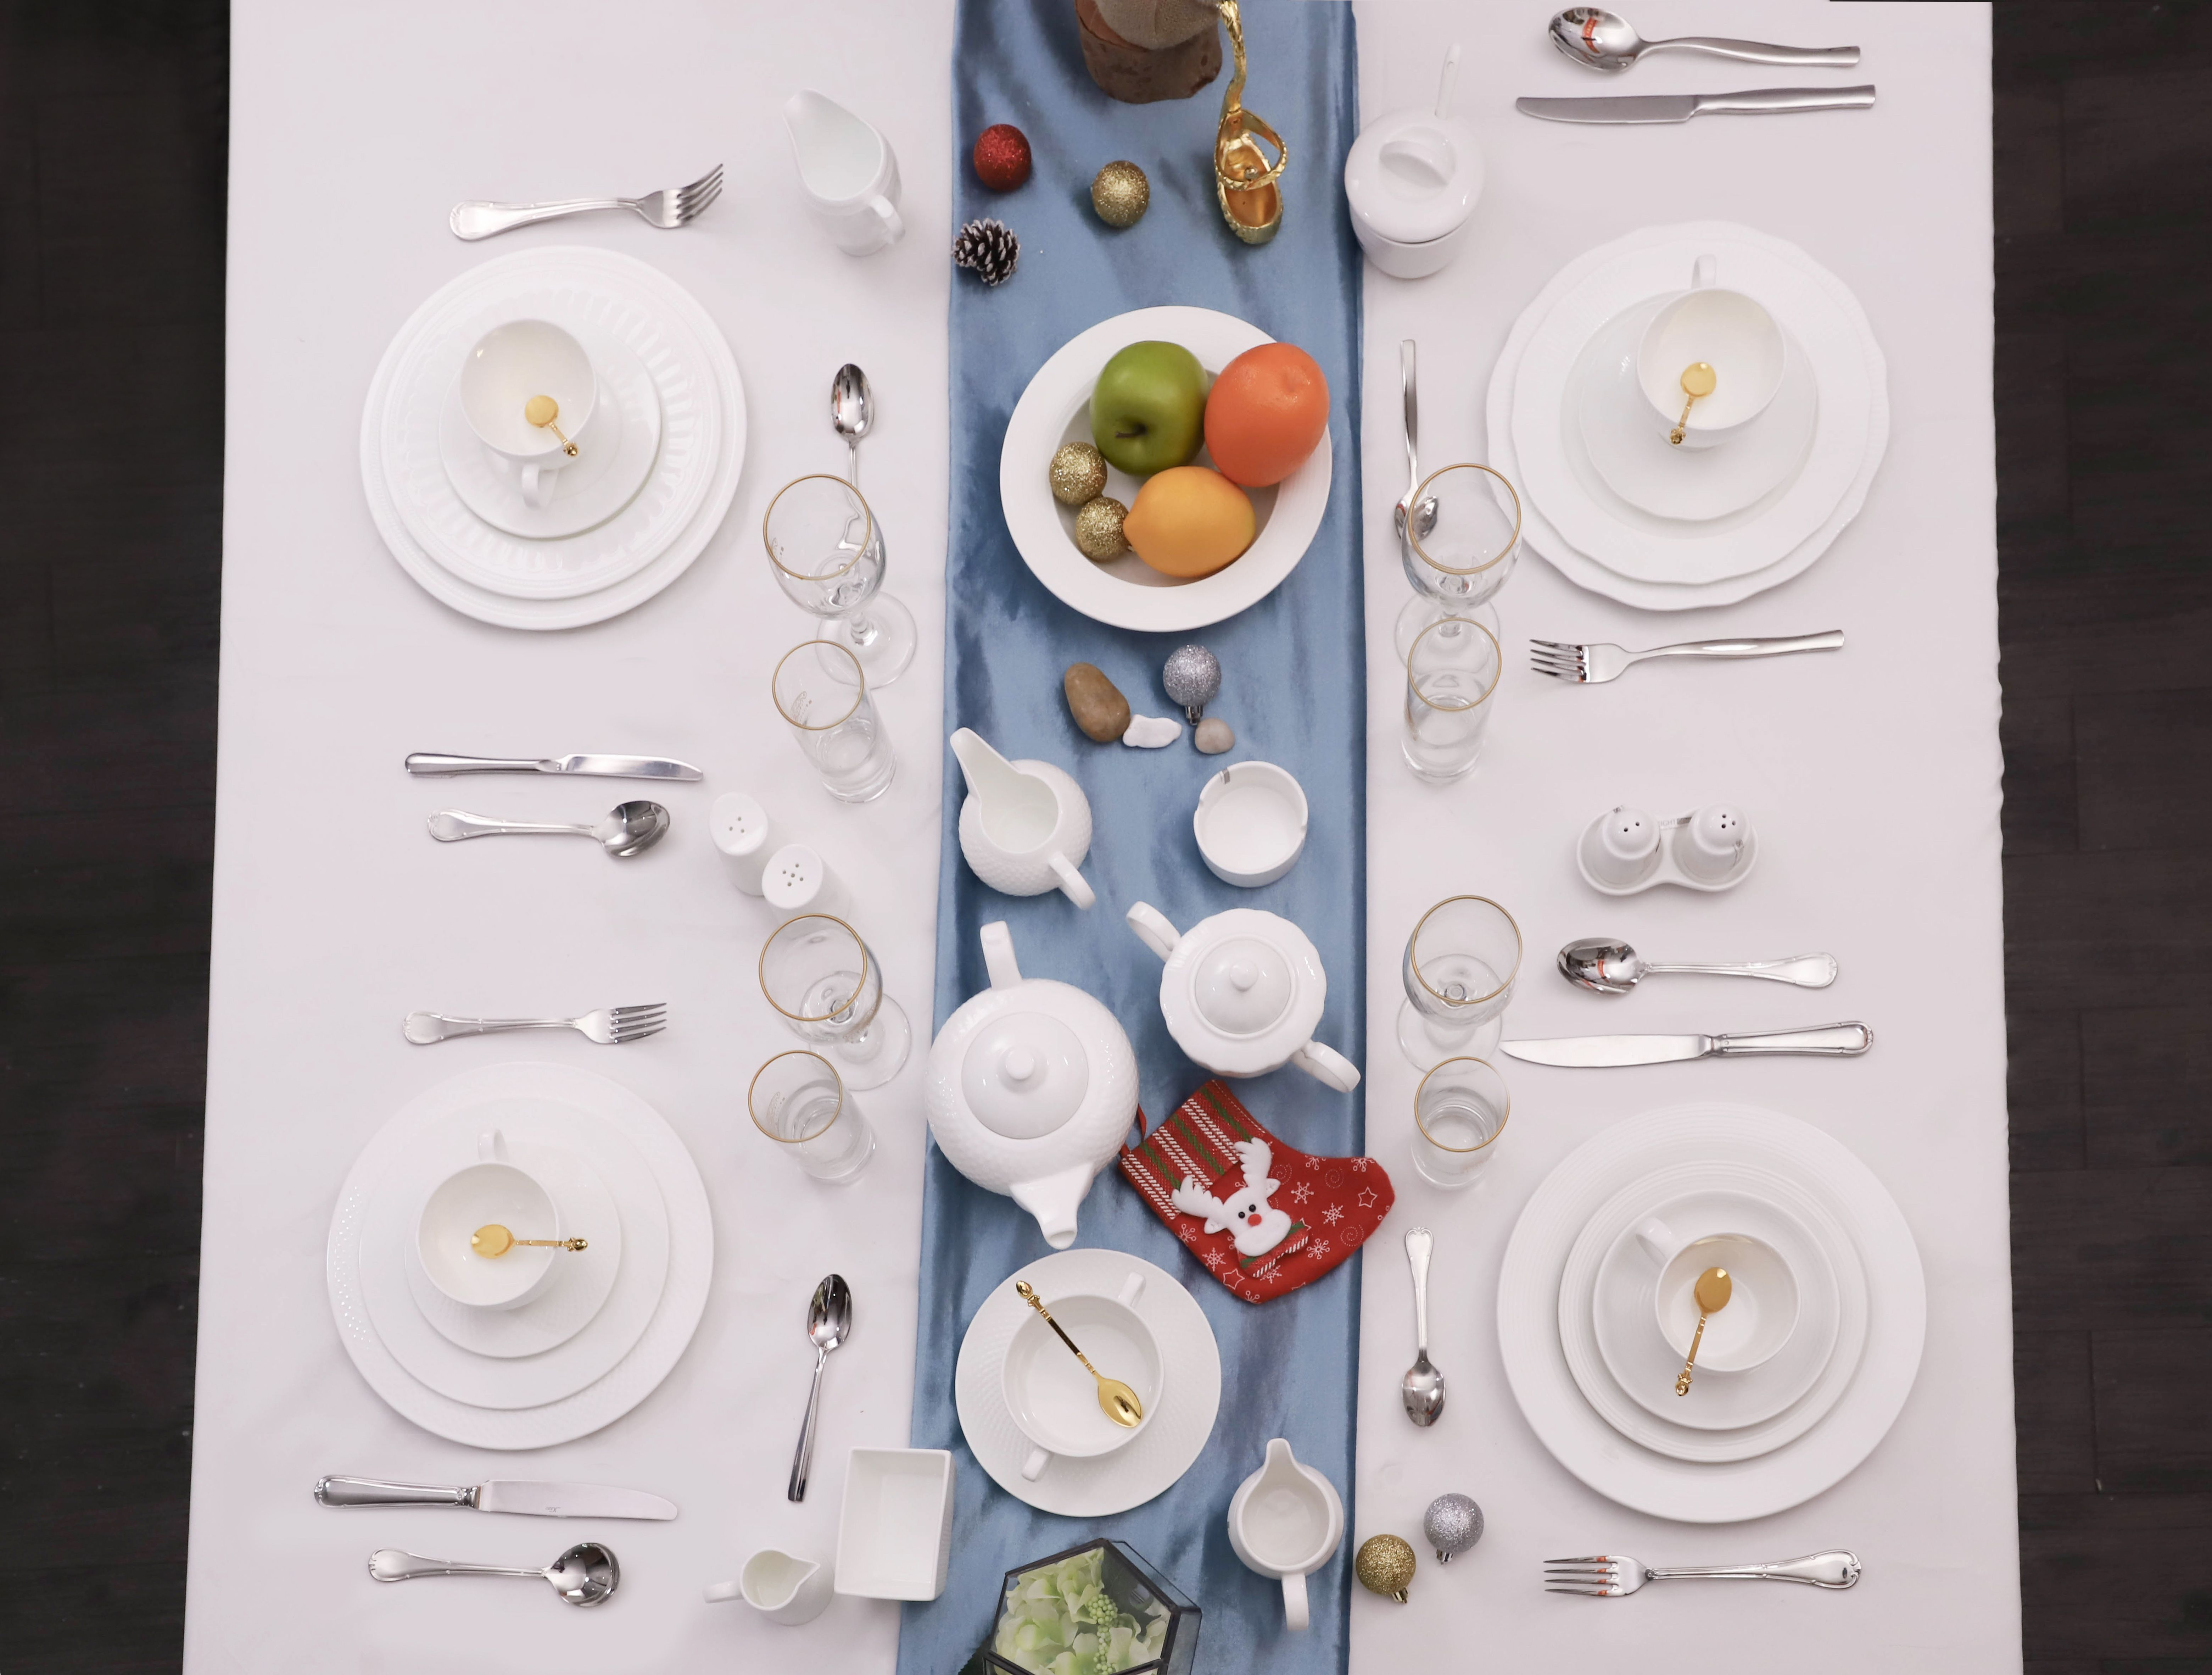 White Porcelain Is A Kind Of Classic Dinnerware Sets That Is Universal For Most Application Scenarios Like Hotel Restaurant Parties Weddings Etc They Look